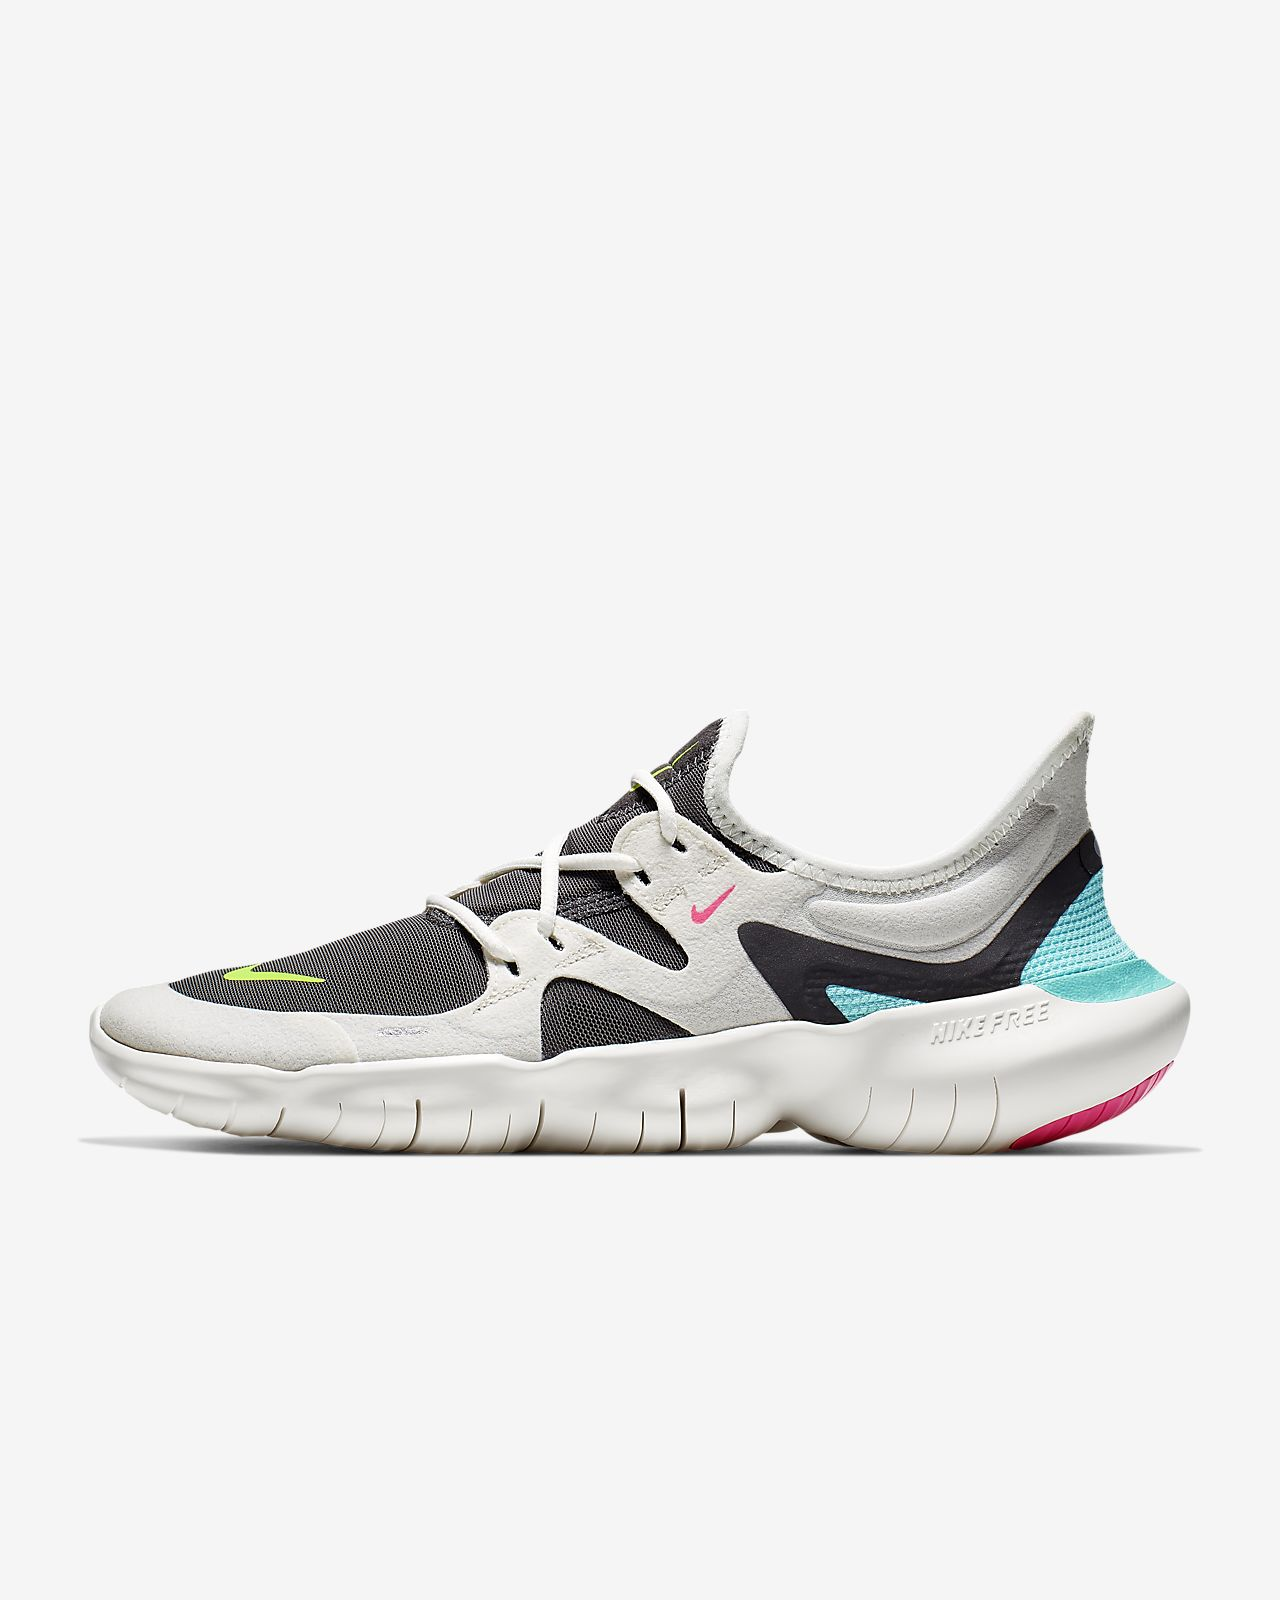 best sneakers a041b 37446 ... Chaussure de running Nike Free RN 5.0 pour Femme